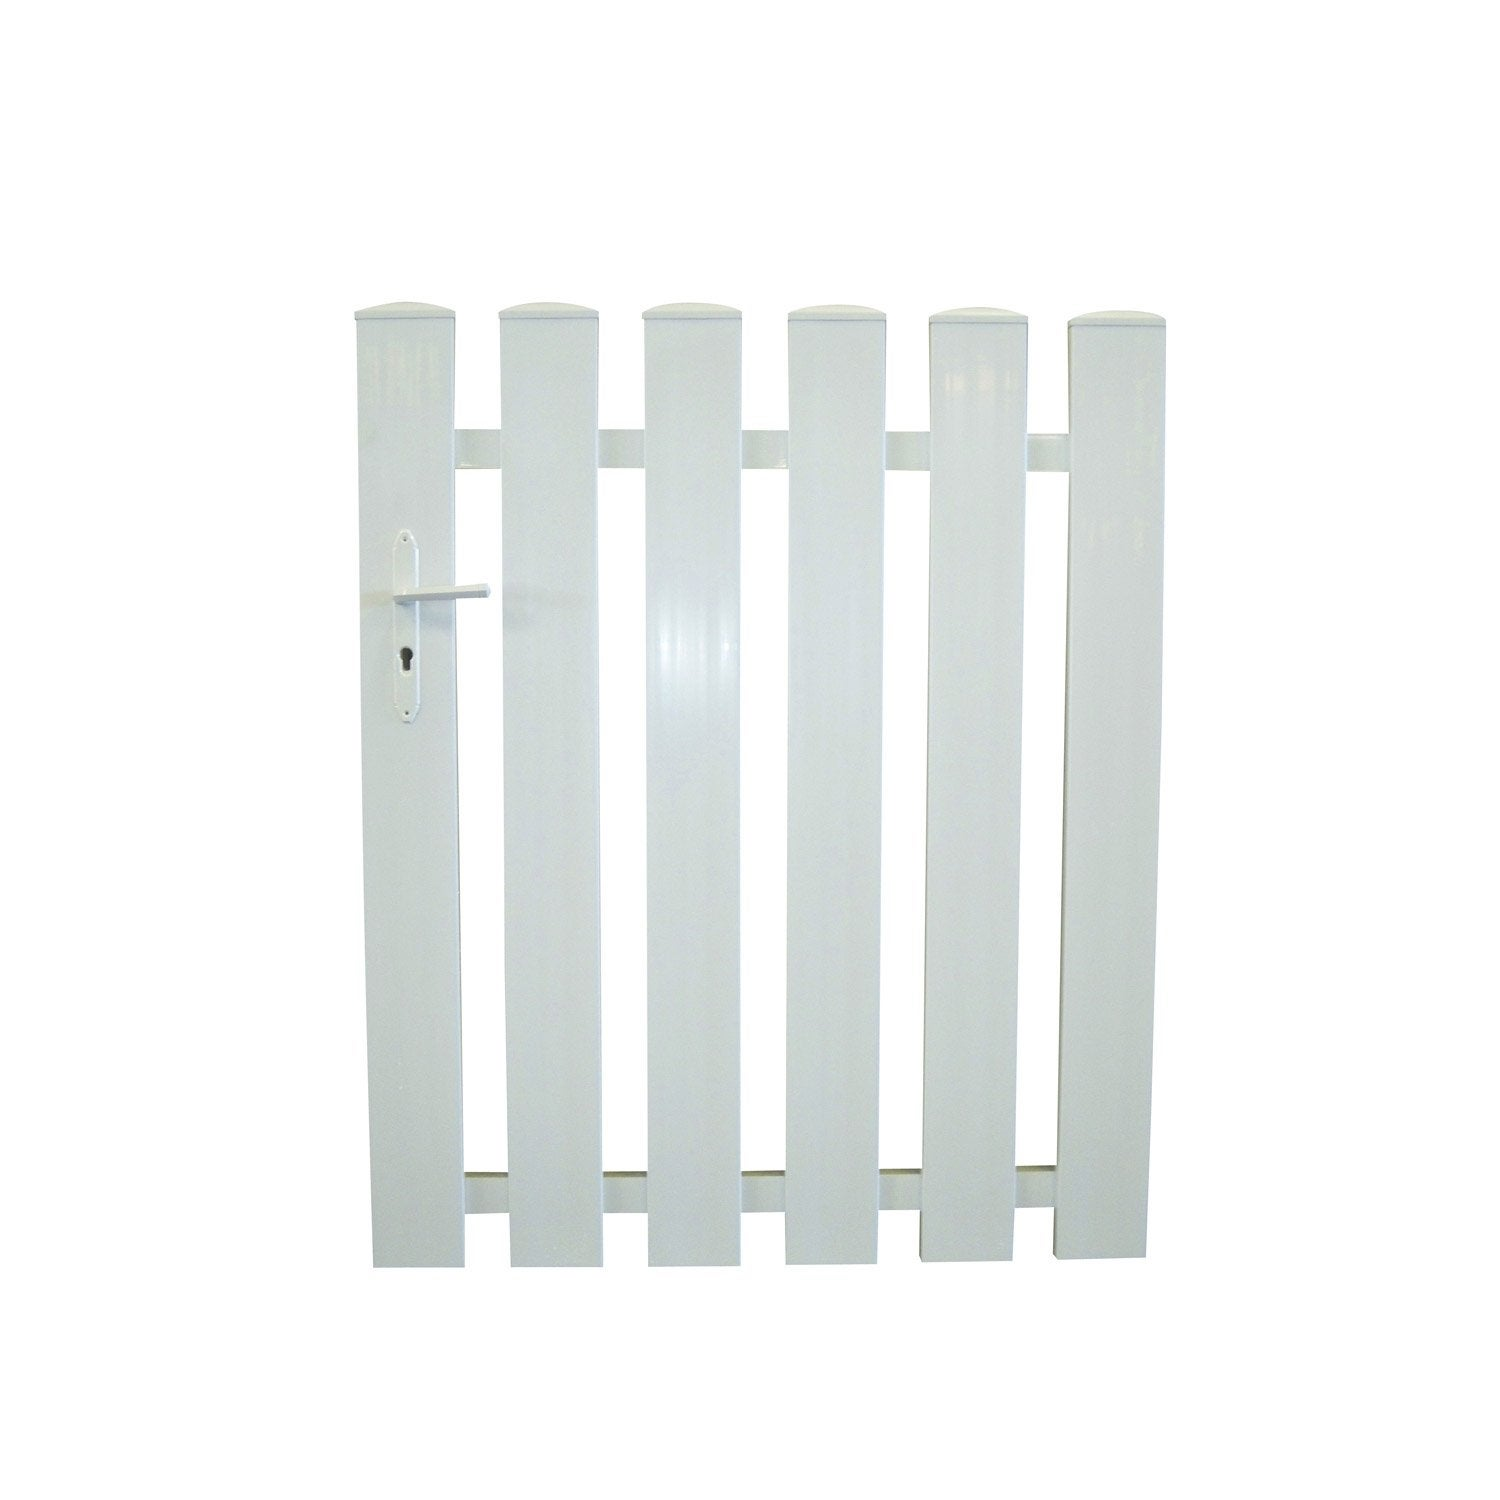 Portillon battant auray x cm blanc leroy for Montaggio finestre pvc leroy merlin